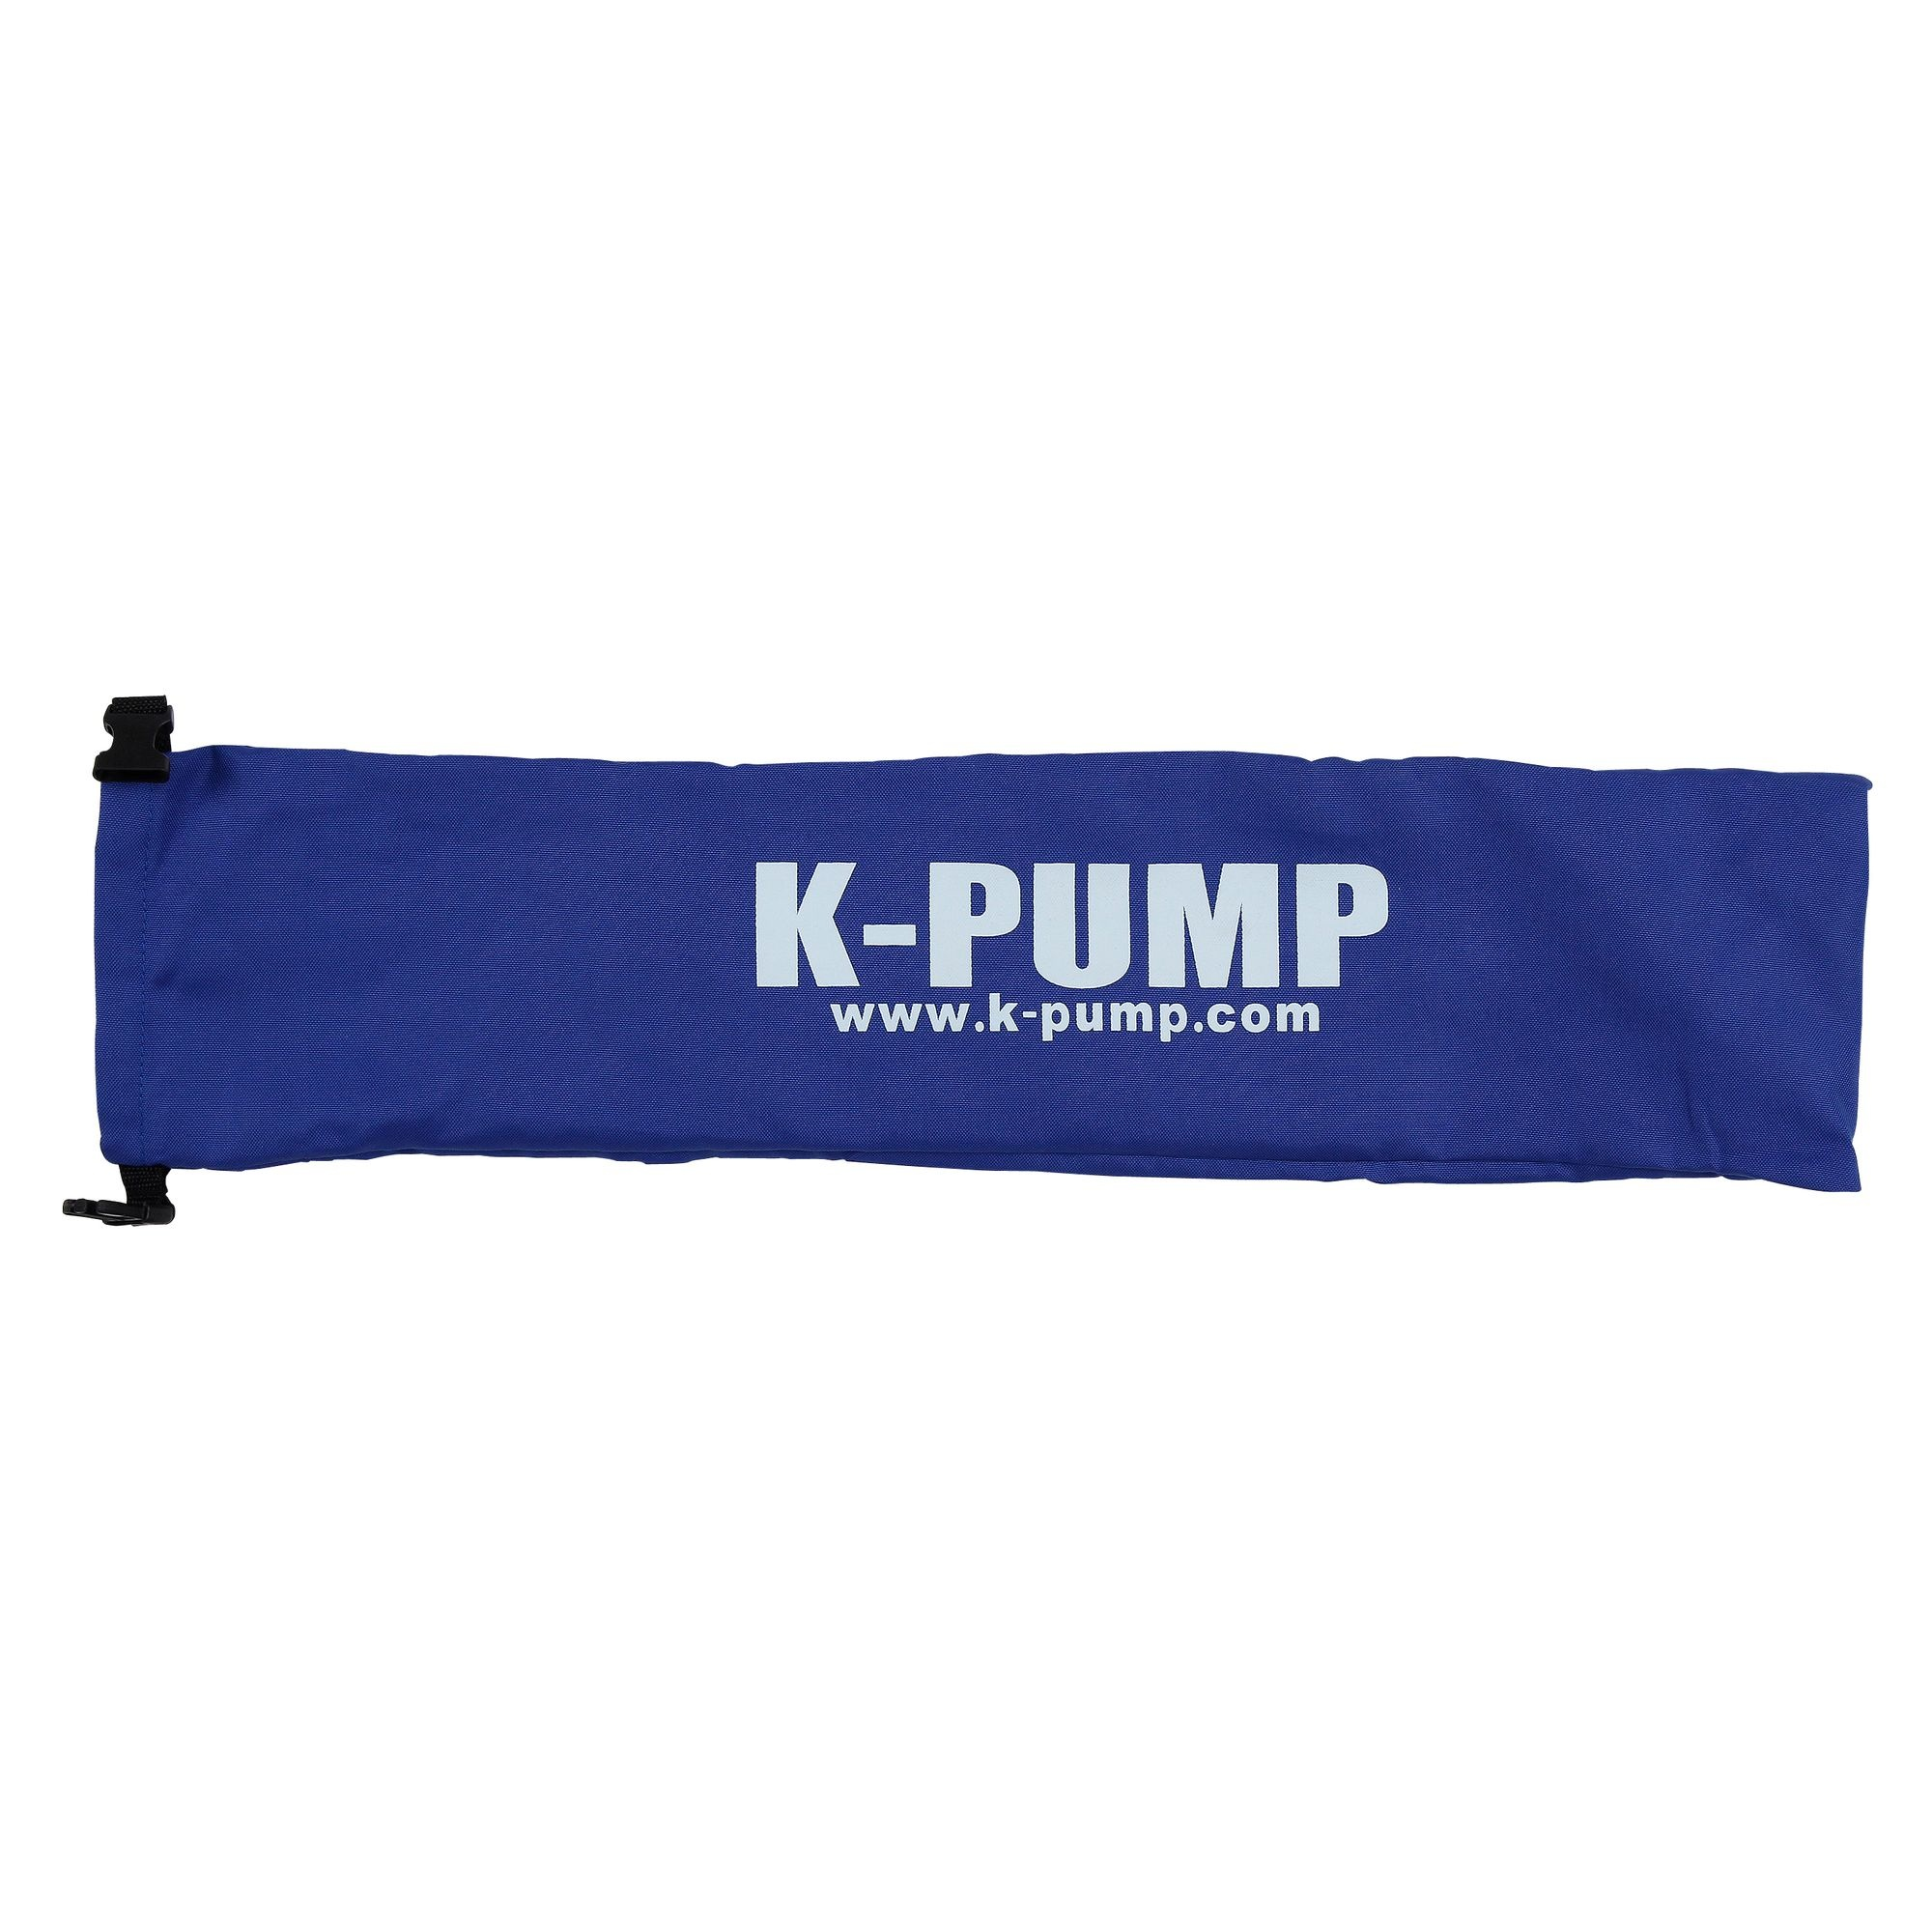 NRS K-Pump - 40 Raft High Volume Pump